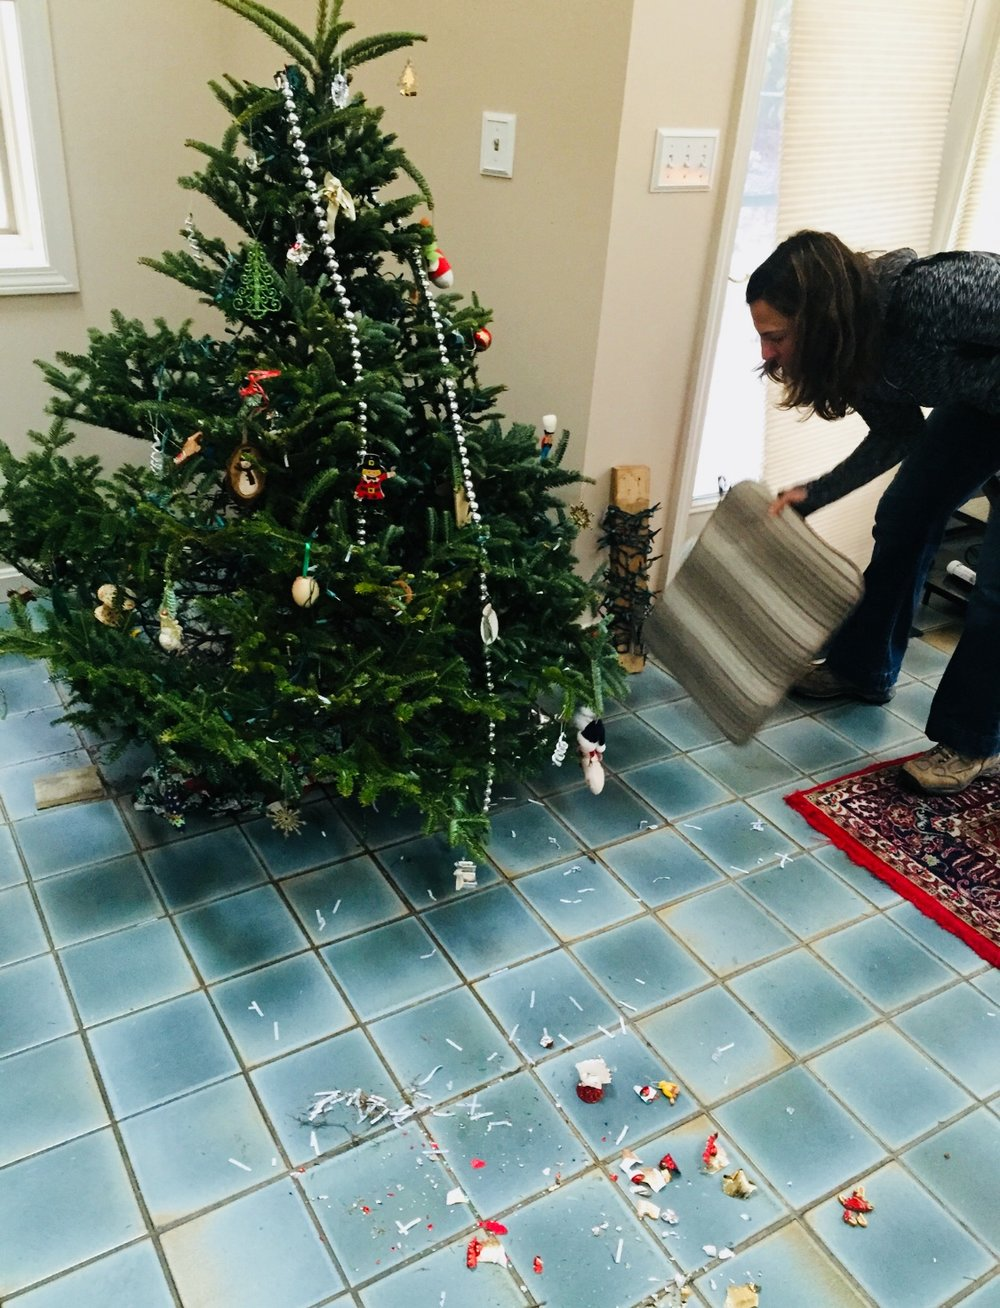 The tree just after the accident, with the brand new ornament in a million tiny pieces on the floor.